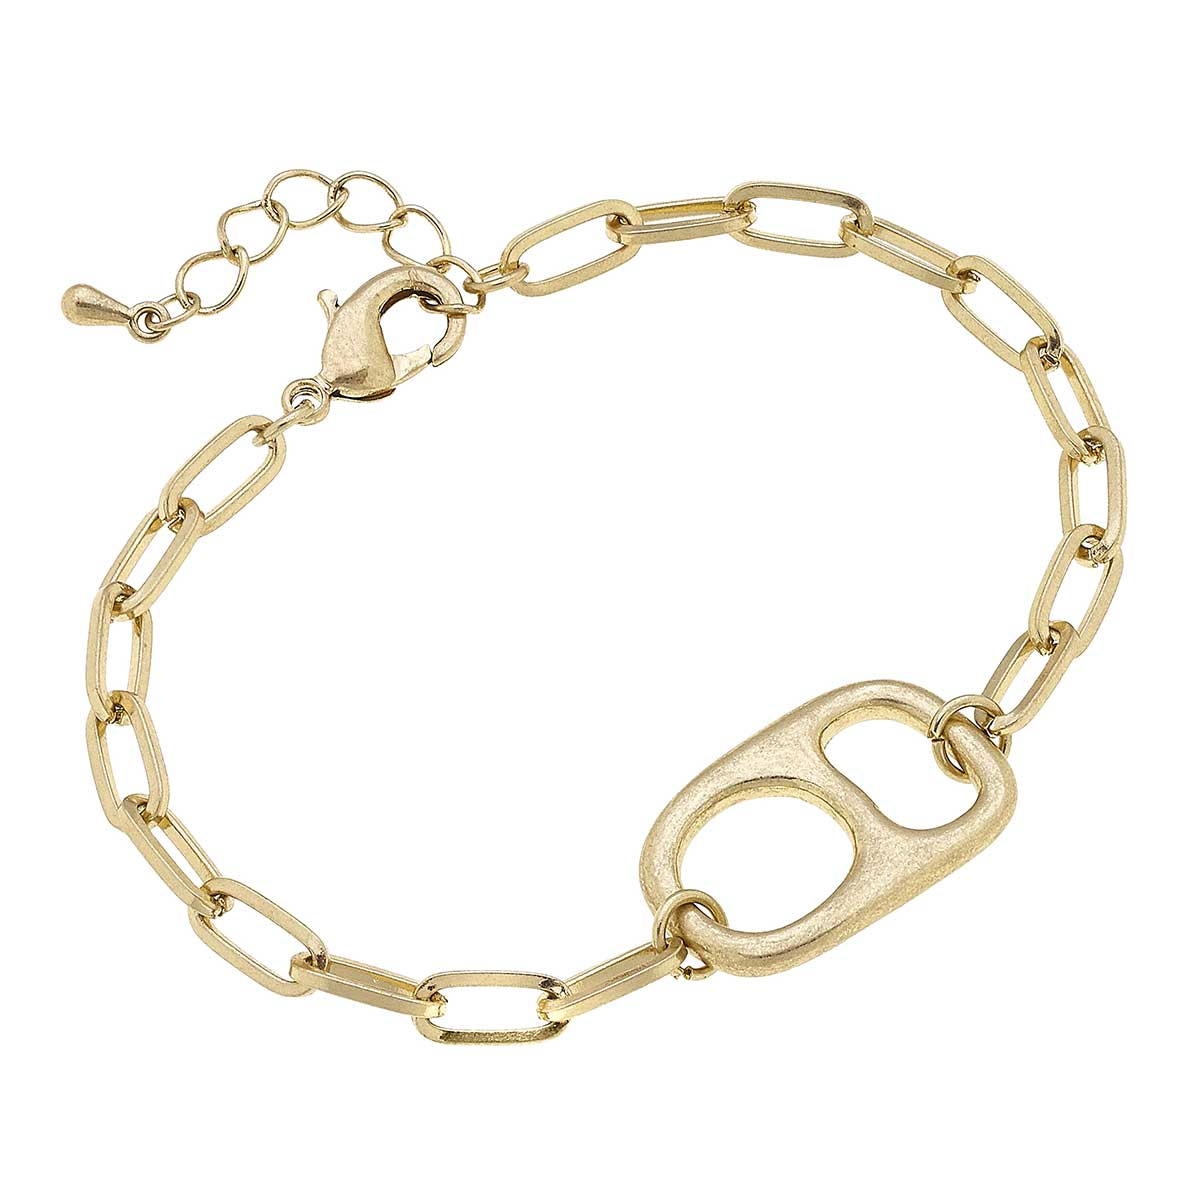 Tabitha Soda Tab-Inspired Chain Link Bracelet in Worn Gold